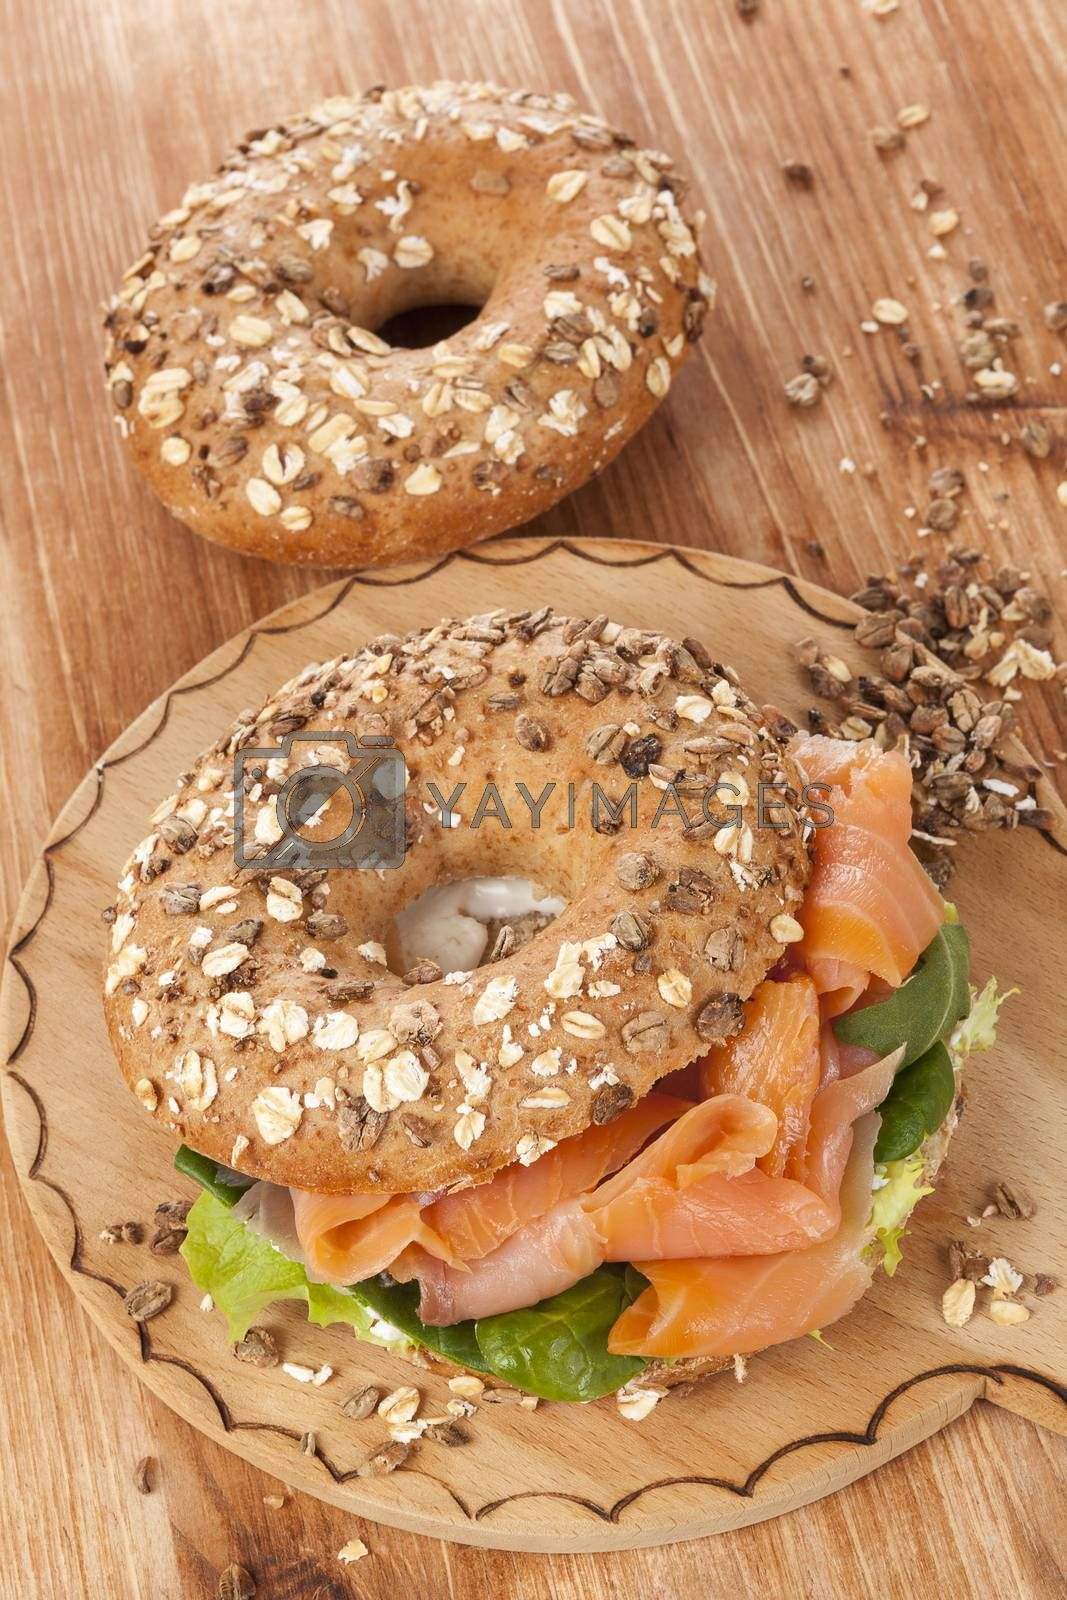 Delicious bagel with smoked salmon. Traditional amercan healthy eating.